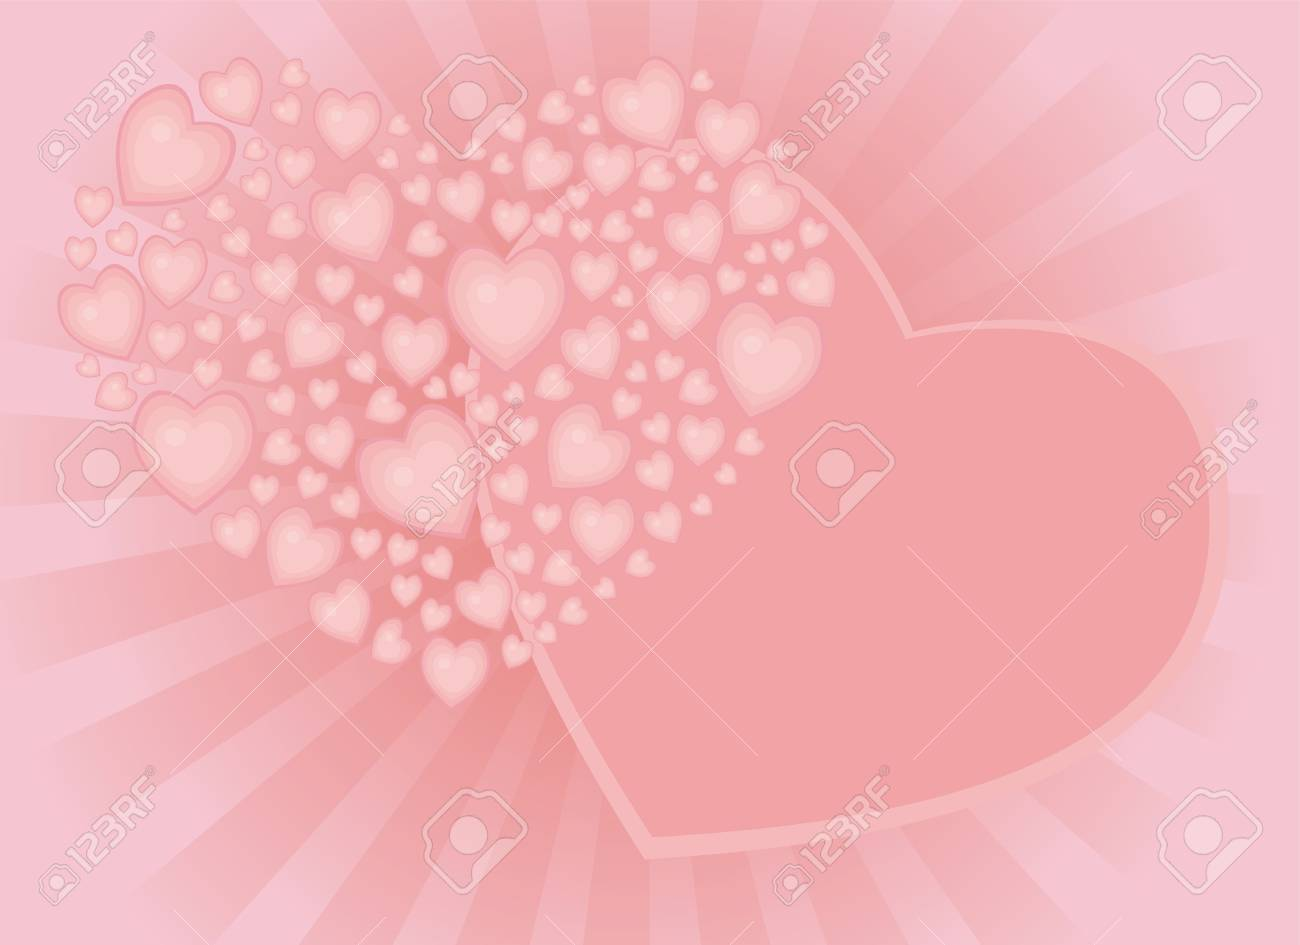 background for congratulations to the valentine's day, wedding Stock Photo - 11738093